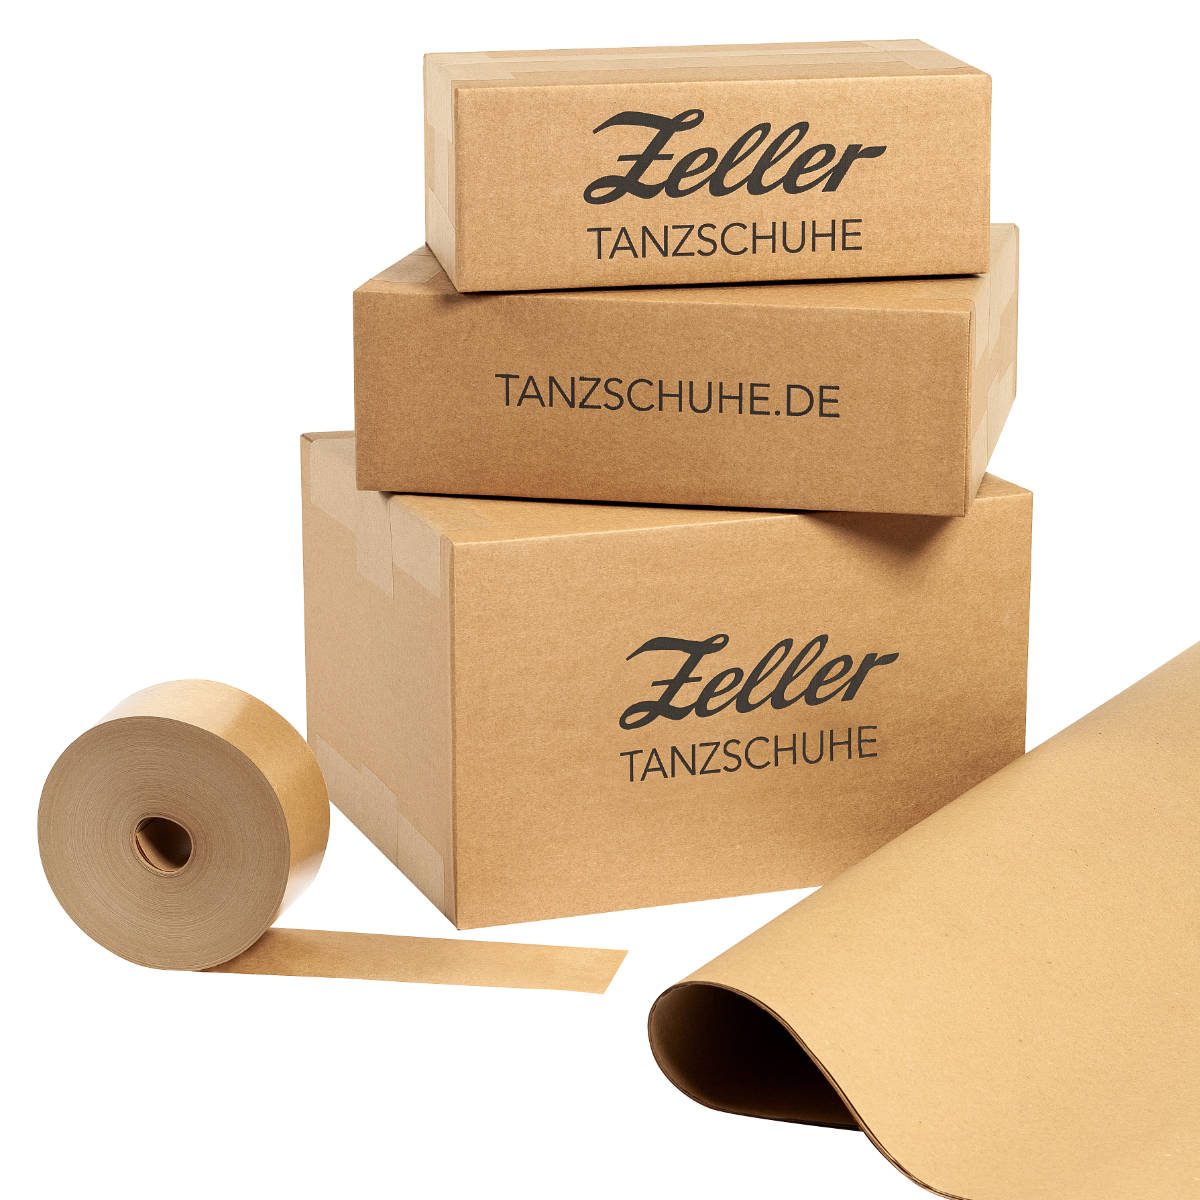 Our packaging is made of 100% recycled paper